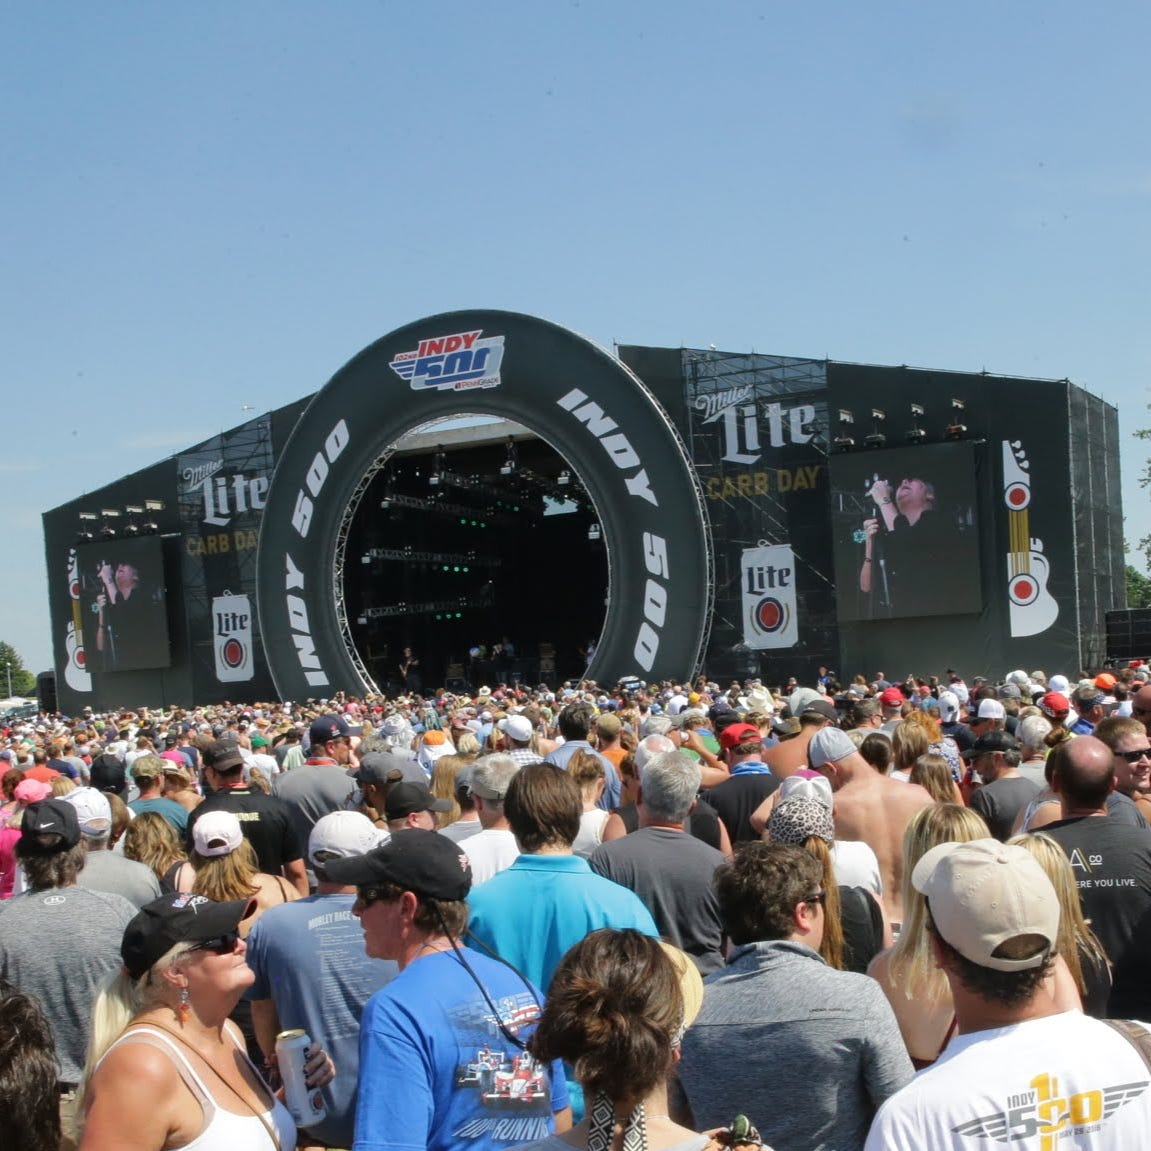 Here's the 2019 Indy 500 Carb Day concert schedule